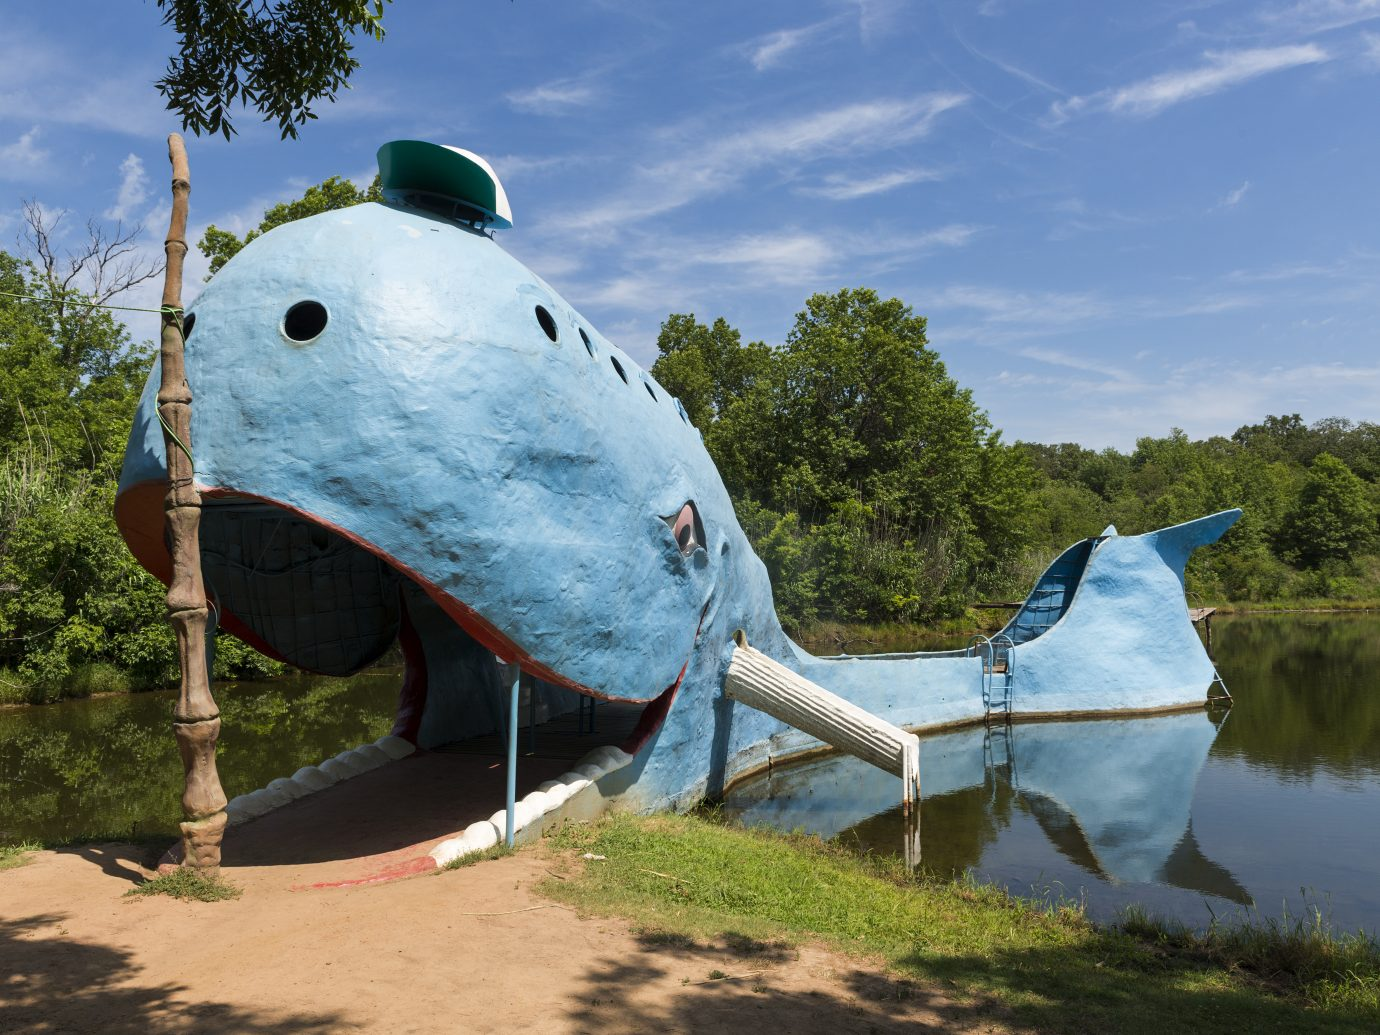 Catoosa, Oklahoma road side attraction Blue Whale